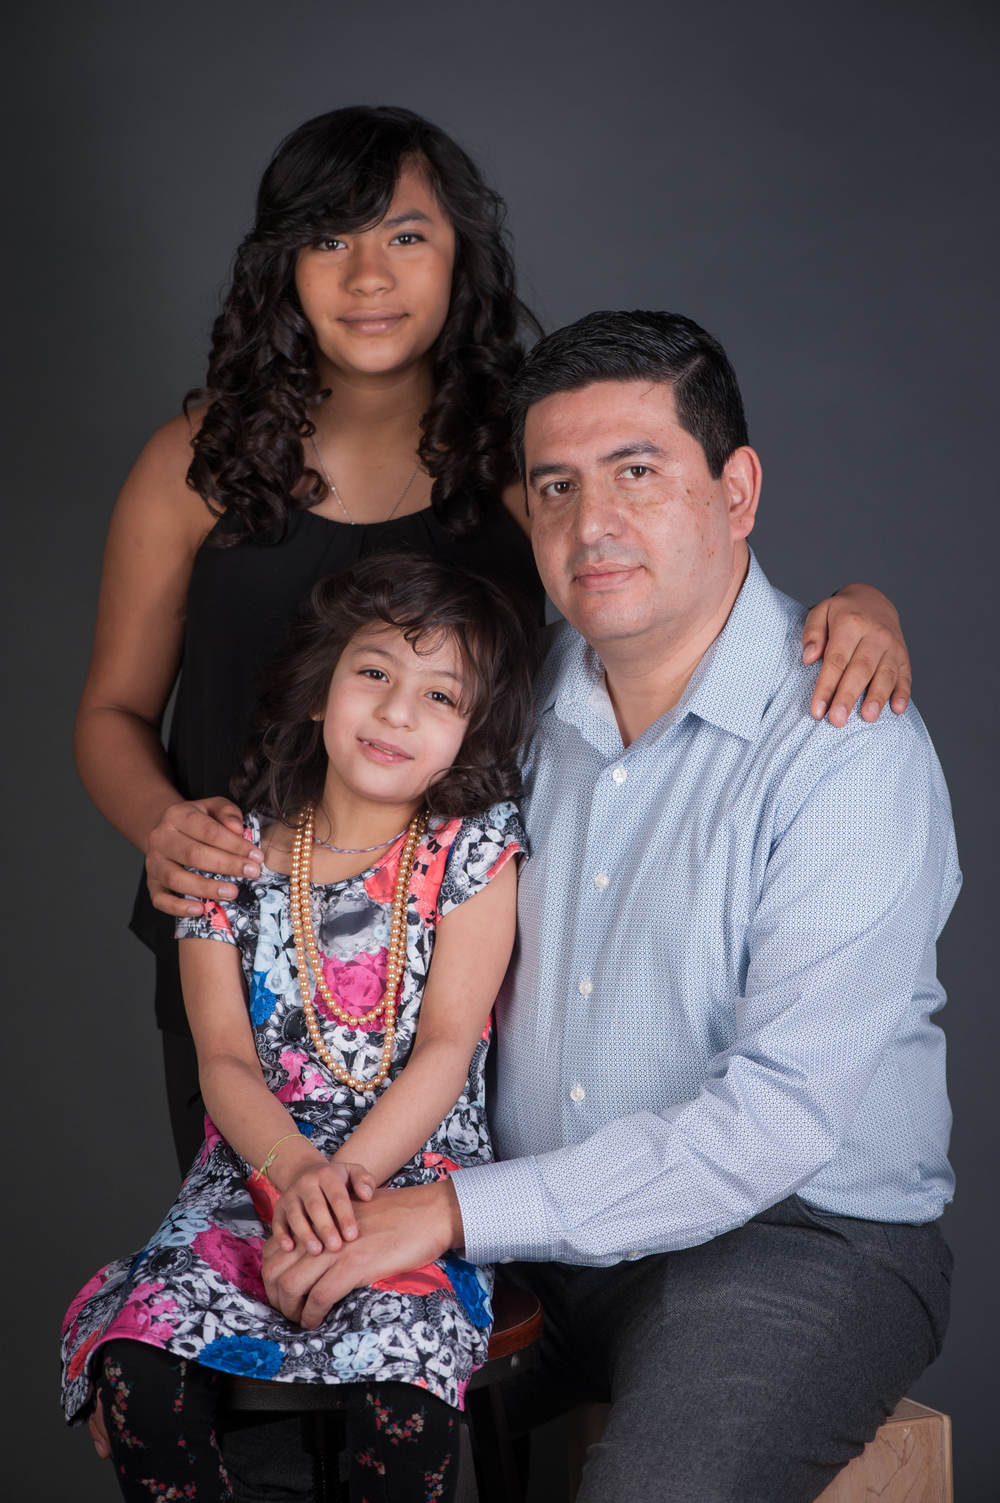 Father and Daughters Portrait Photos | Nomee Photography | Chicago Family Photographer in Studio